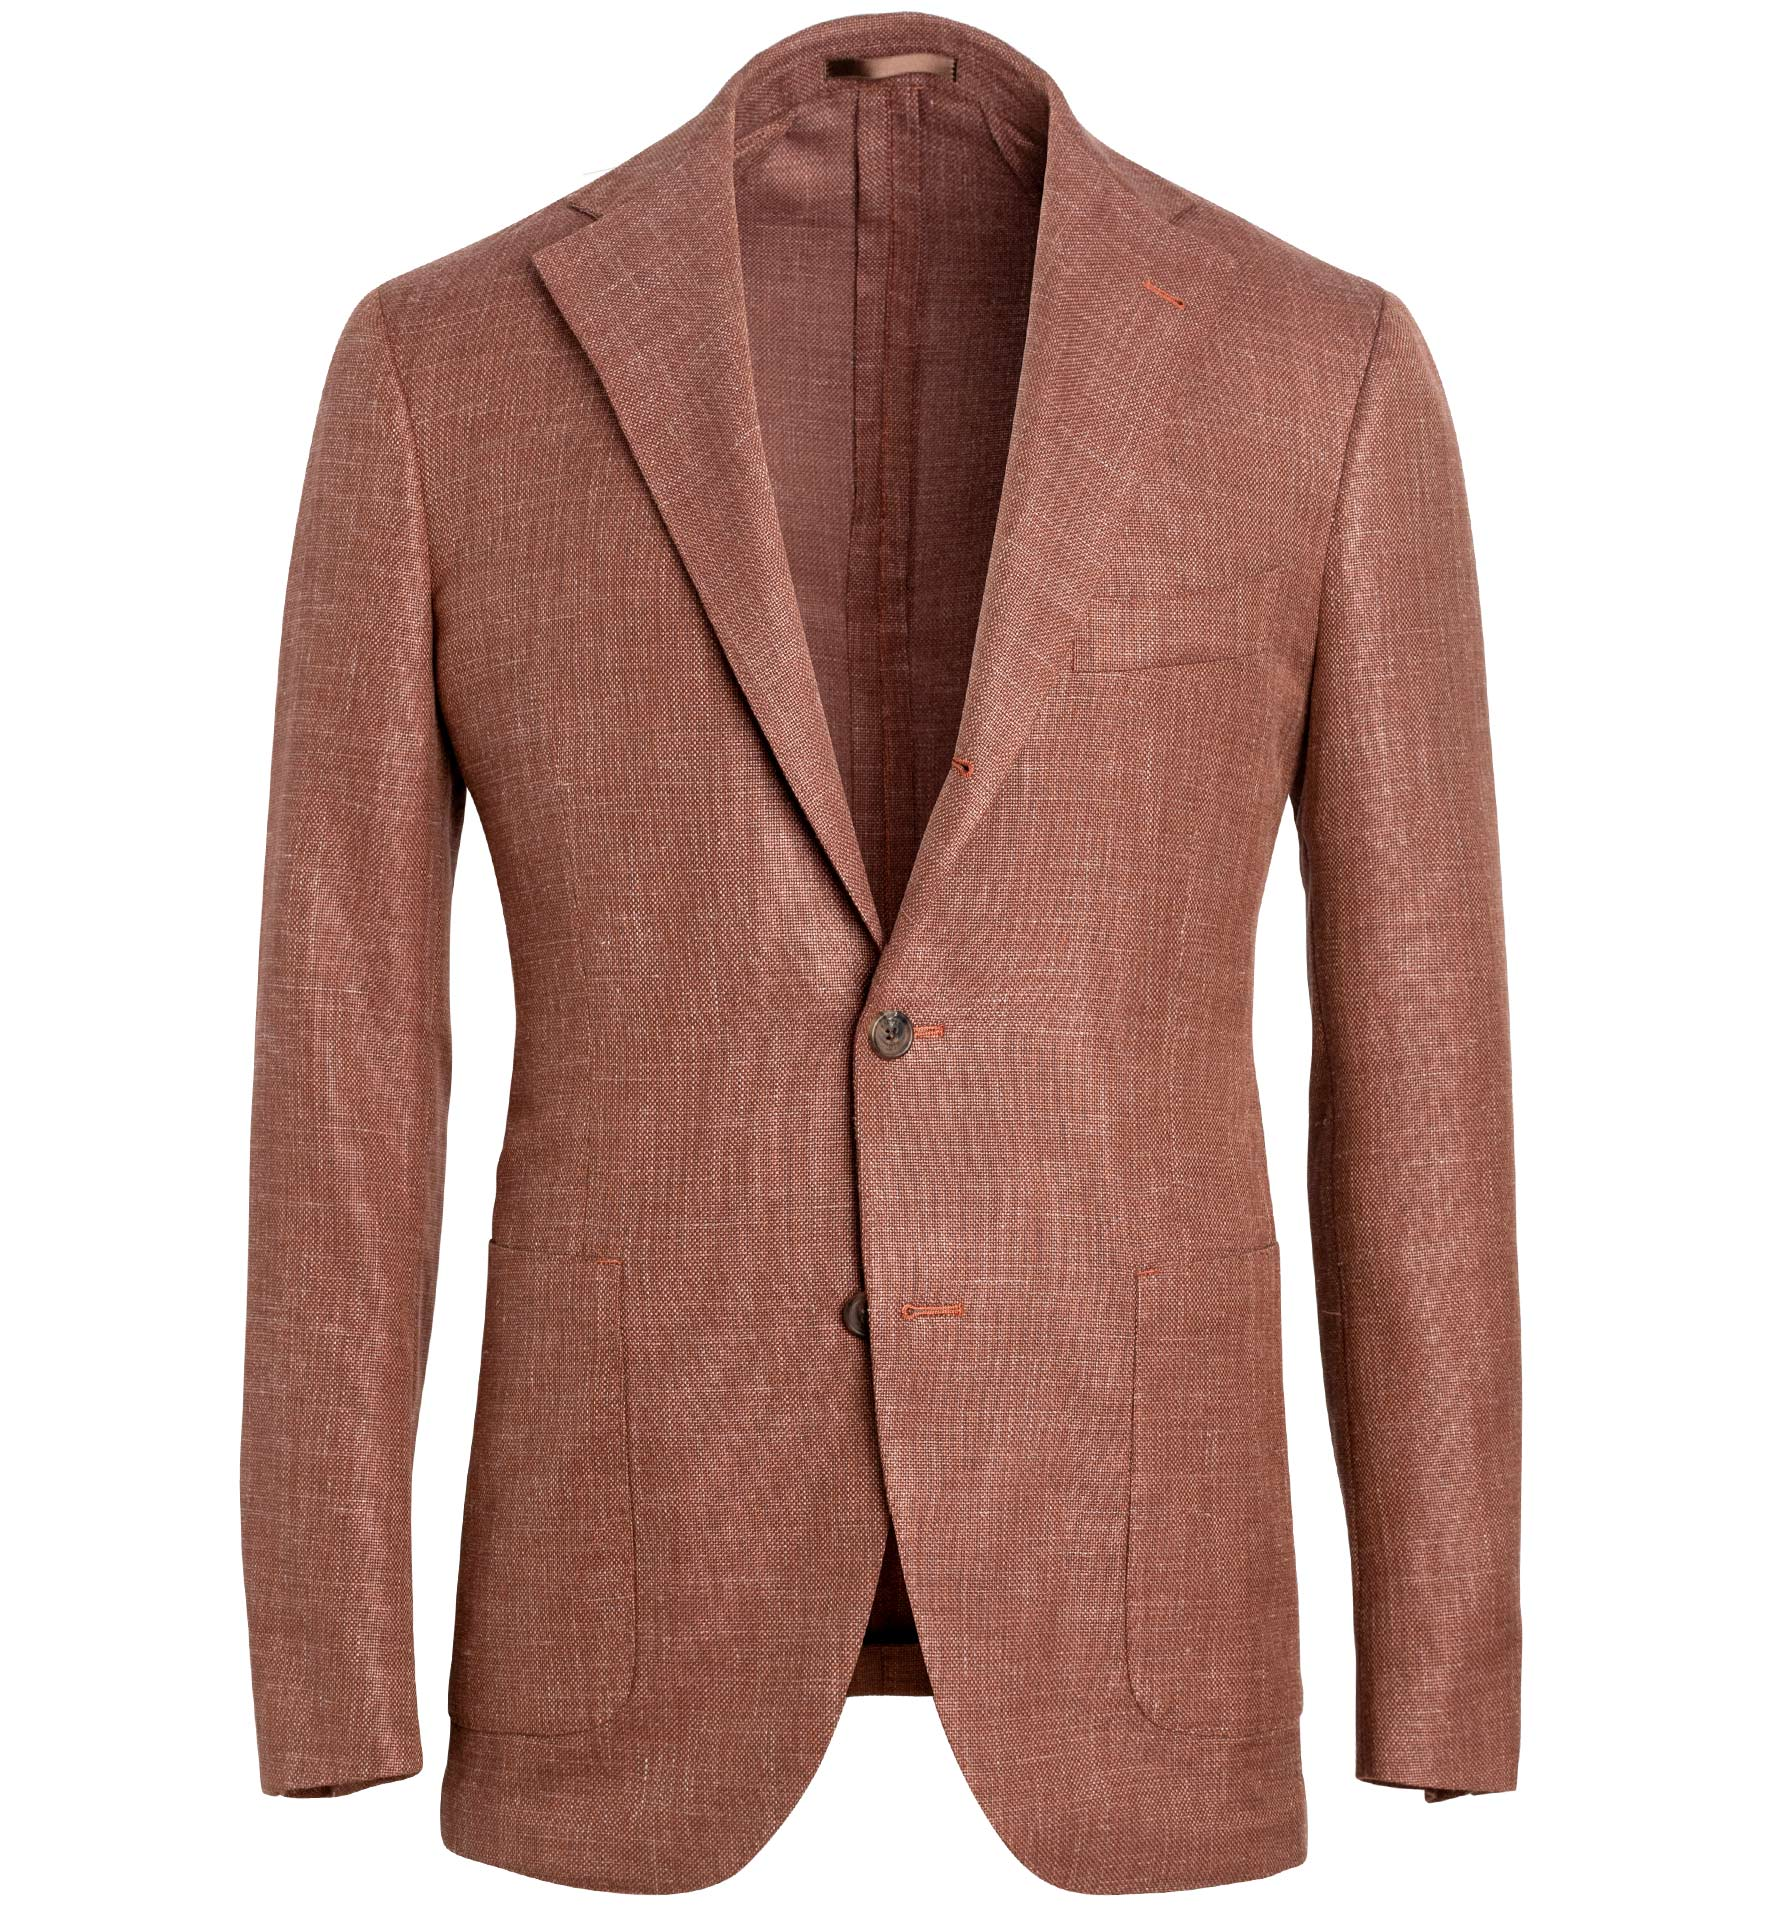 Zoom Image of Bedford Sienna Wool Blend Hopsack Jacket